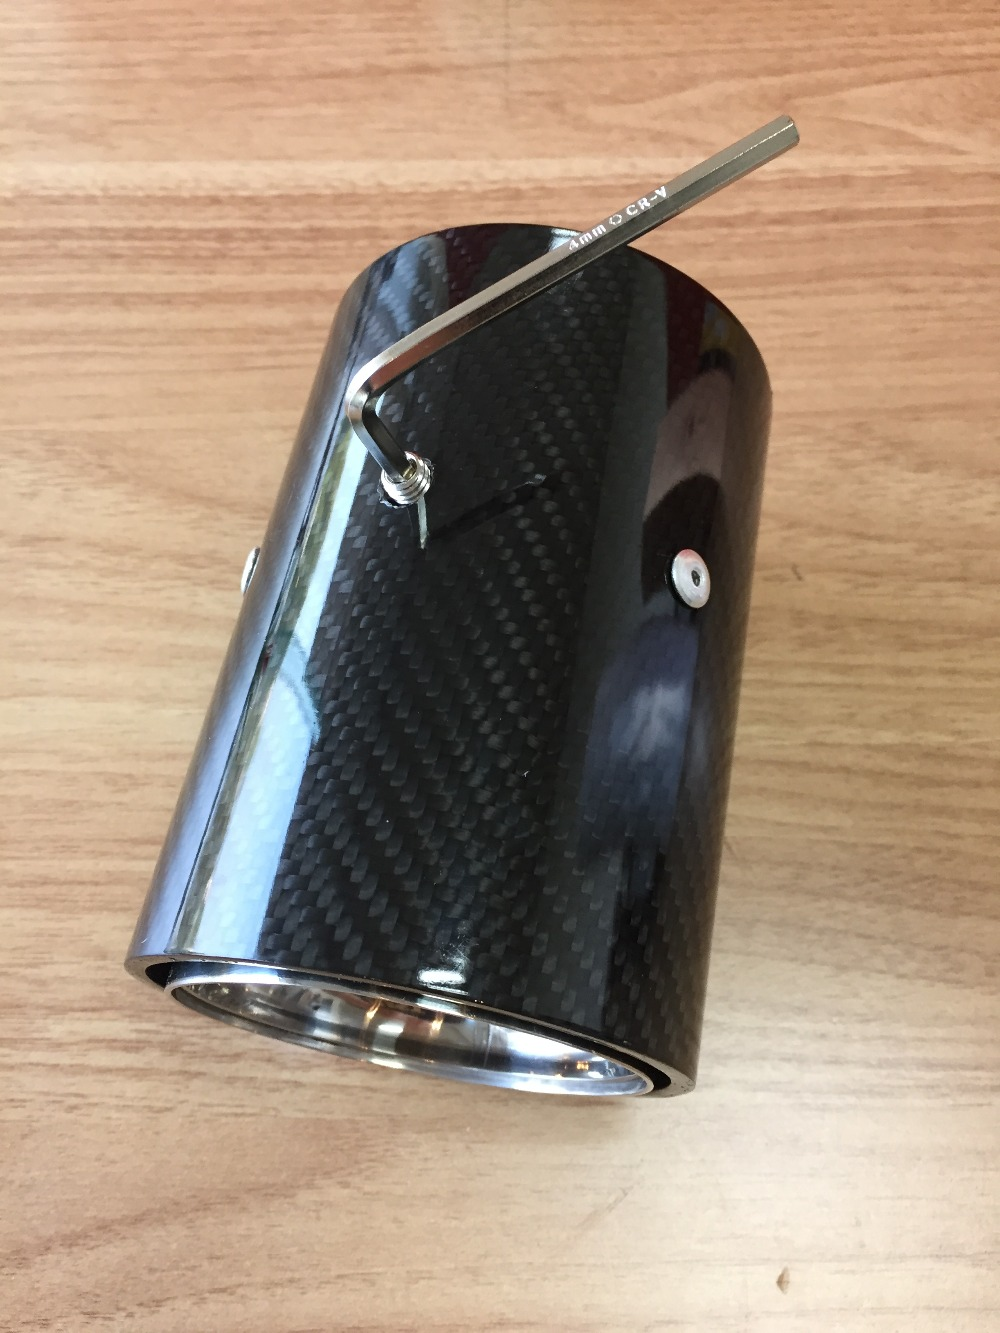 1 PIECE NEW M Performance carbon Exhaust Tip for BMW M3 M4 M5 2012 car styling Akrapovic car exhaust muffler nozzle tip in Mufflers from Automobiles Motorcycles